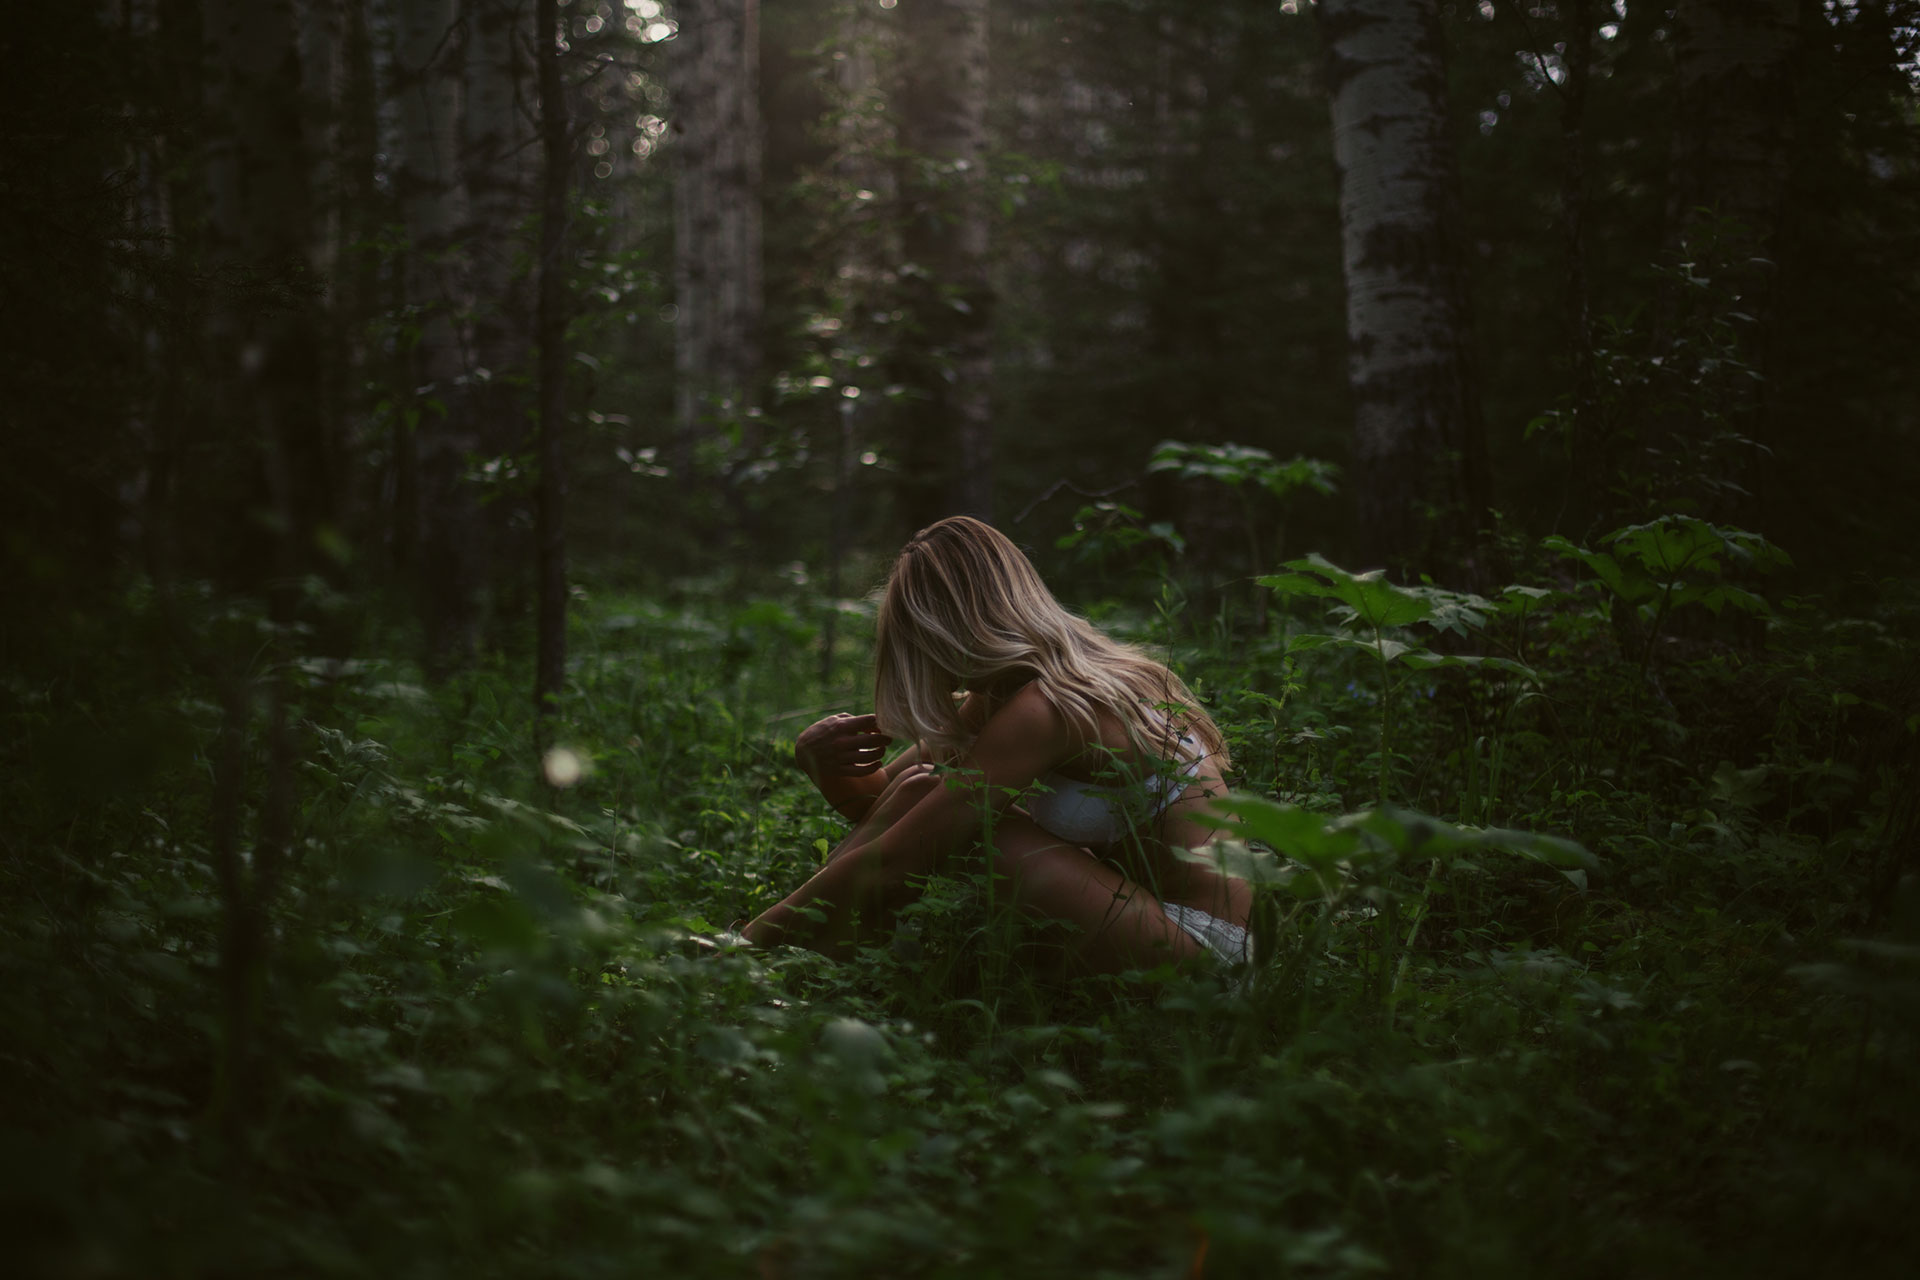 Alberta_Forest_Boudoir_Session